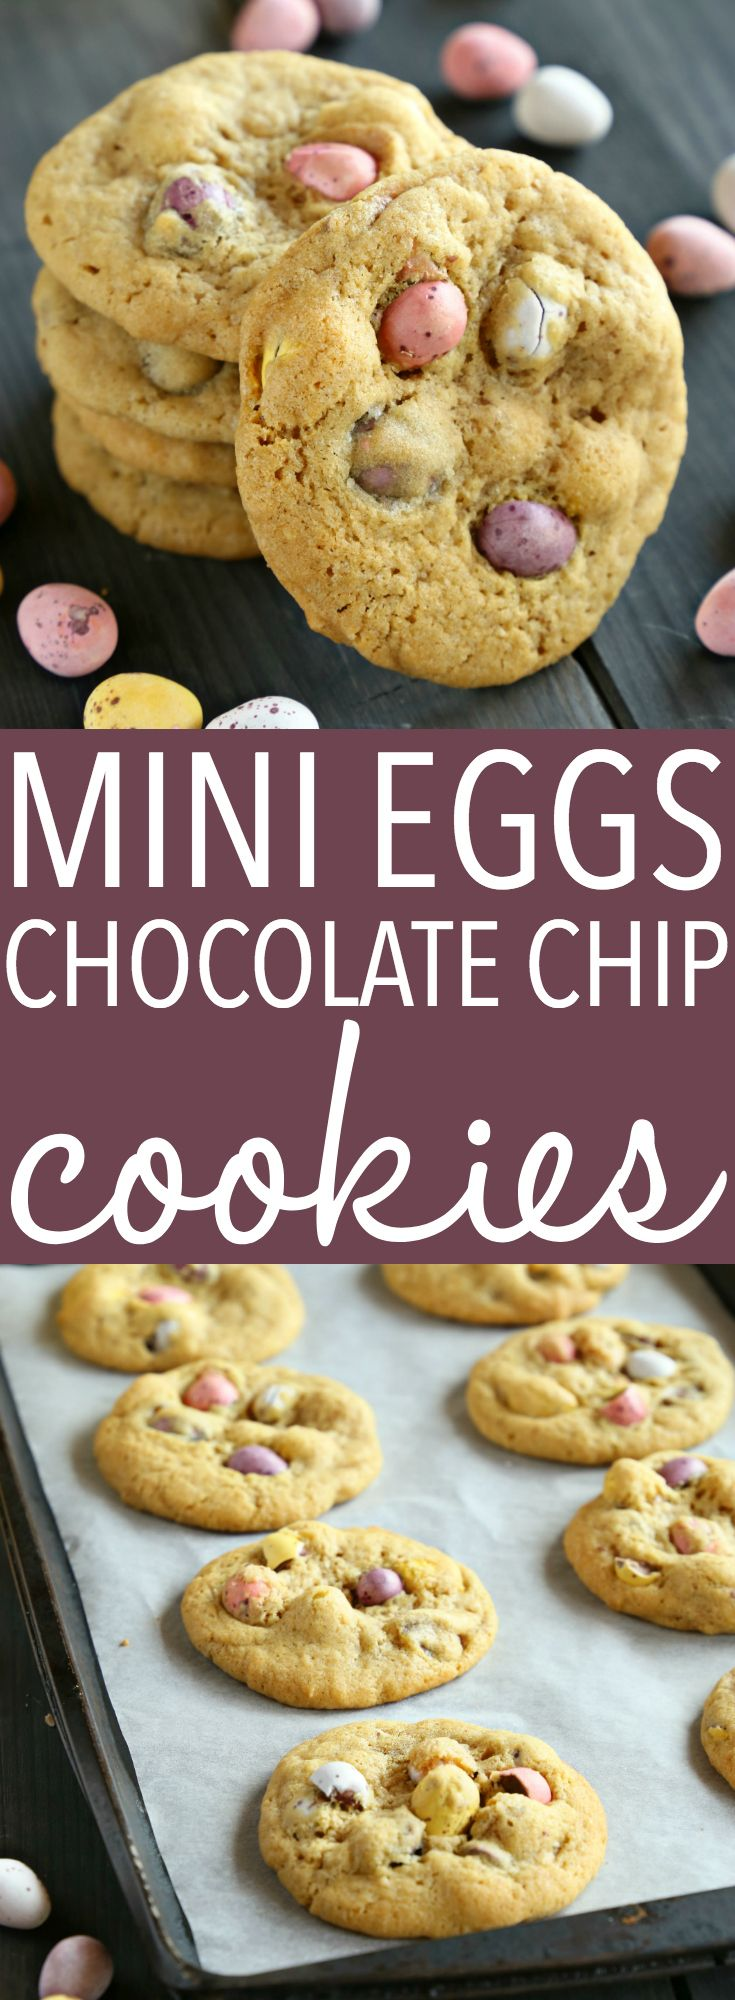 These Mini Eggs Chocolate Chip Cookies are the perfect easy snack or dessert for Easter! Made with the perfect soft and chewy chocolate chip cookie dough and stuffed with delicious candy-coated Mini Eggs, these cookies are beautiful, colorful, and perfect for Spring! Recipe from thebusybaker.ca! #minieggsdessert #minieggscookies #easyeasterdessert via @busybakerblog